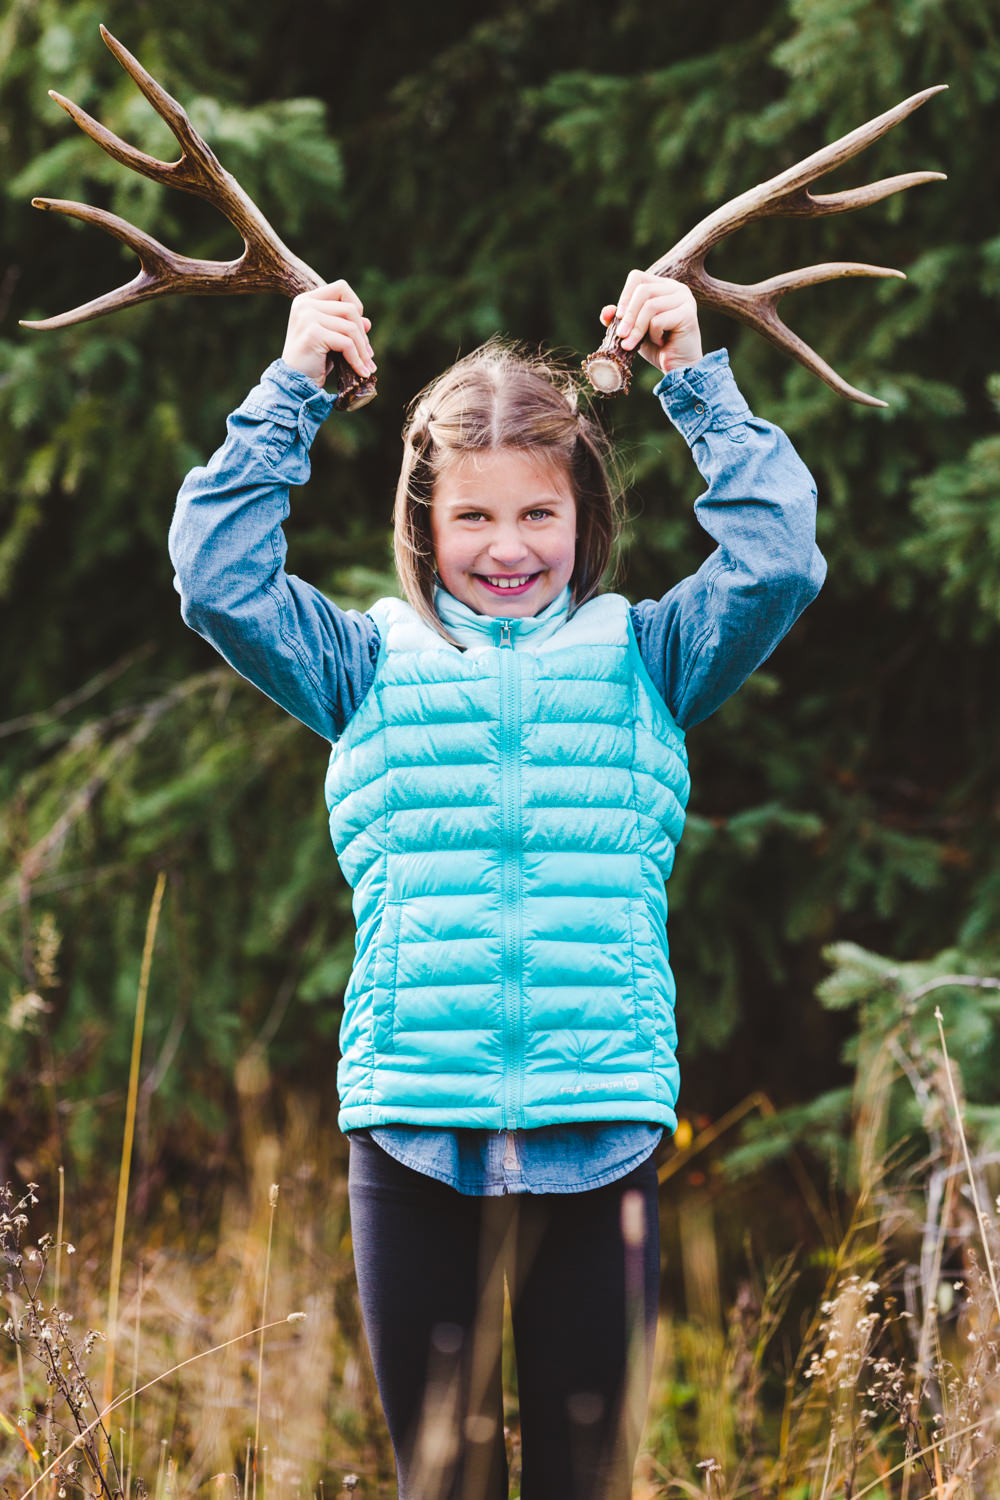 quesnel-family-photographers-quesnel-family-photography-cotton-wood-river-quesnel-bc-kelowna-photographer-julie-dorge (11 of 48).jpg